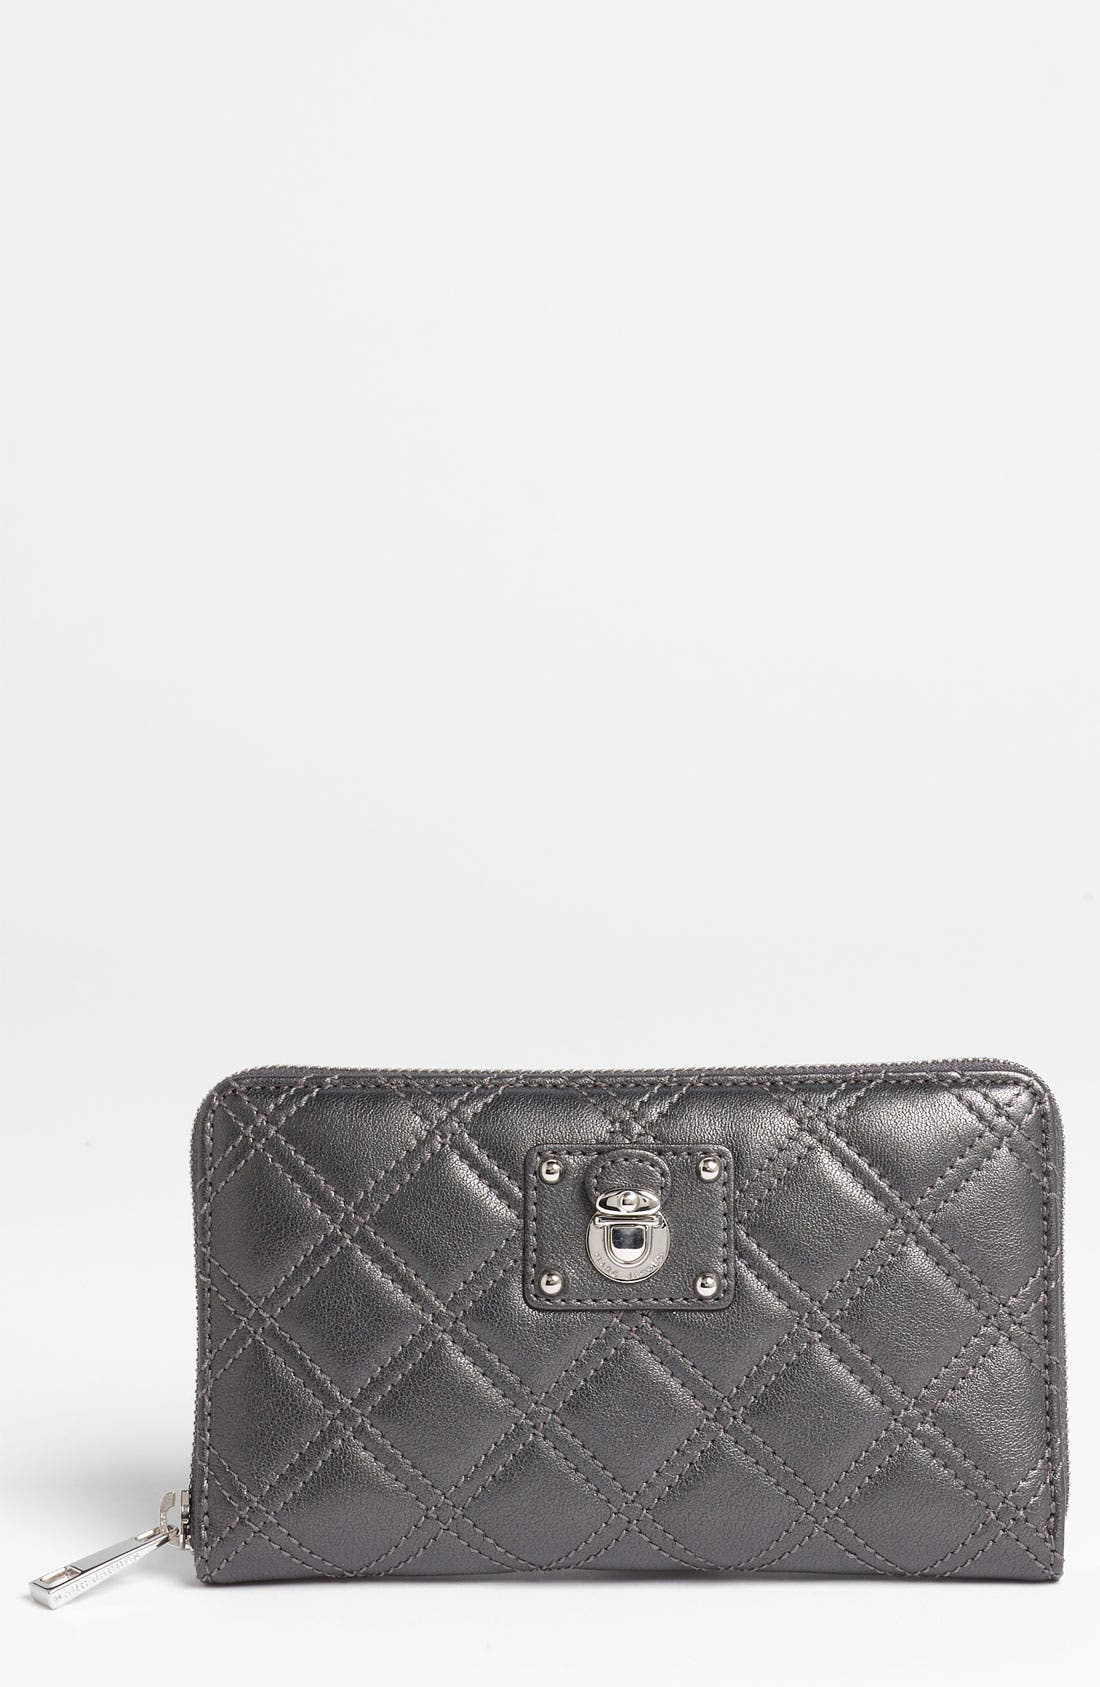 Alternate Image 1 Selected - MARC JACOBS 'Quilting Hudson' Leather Wallet